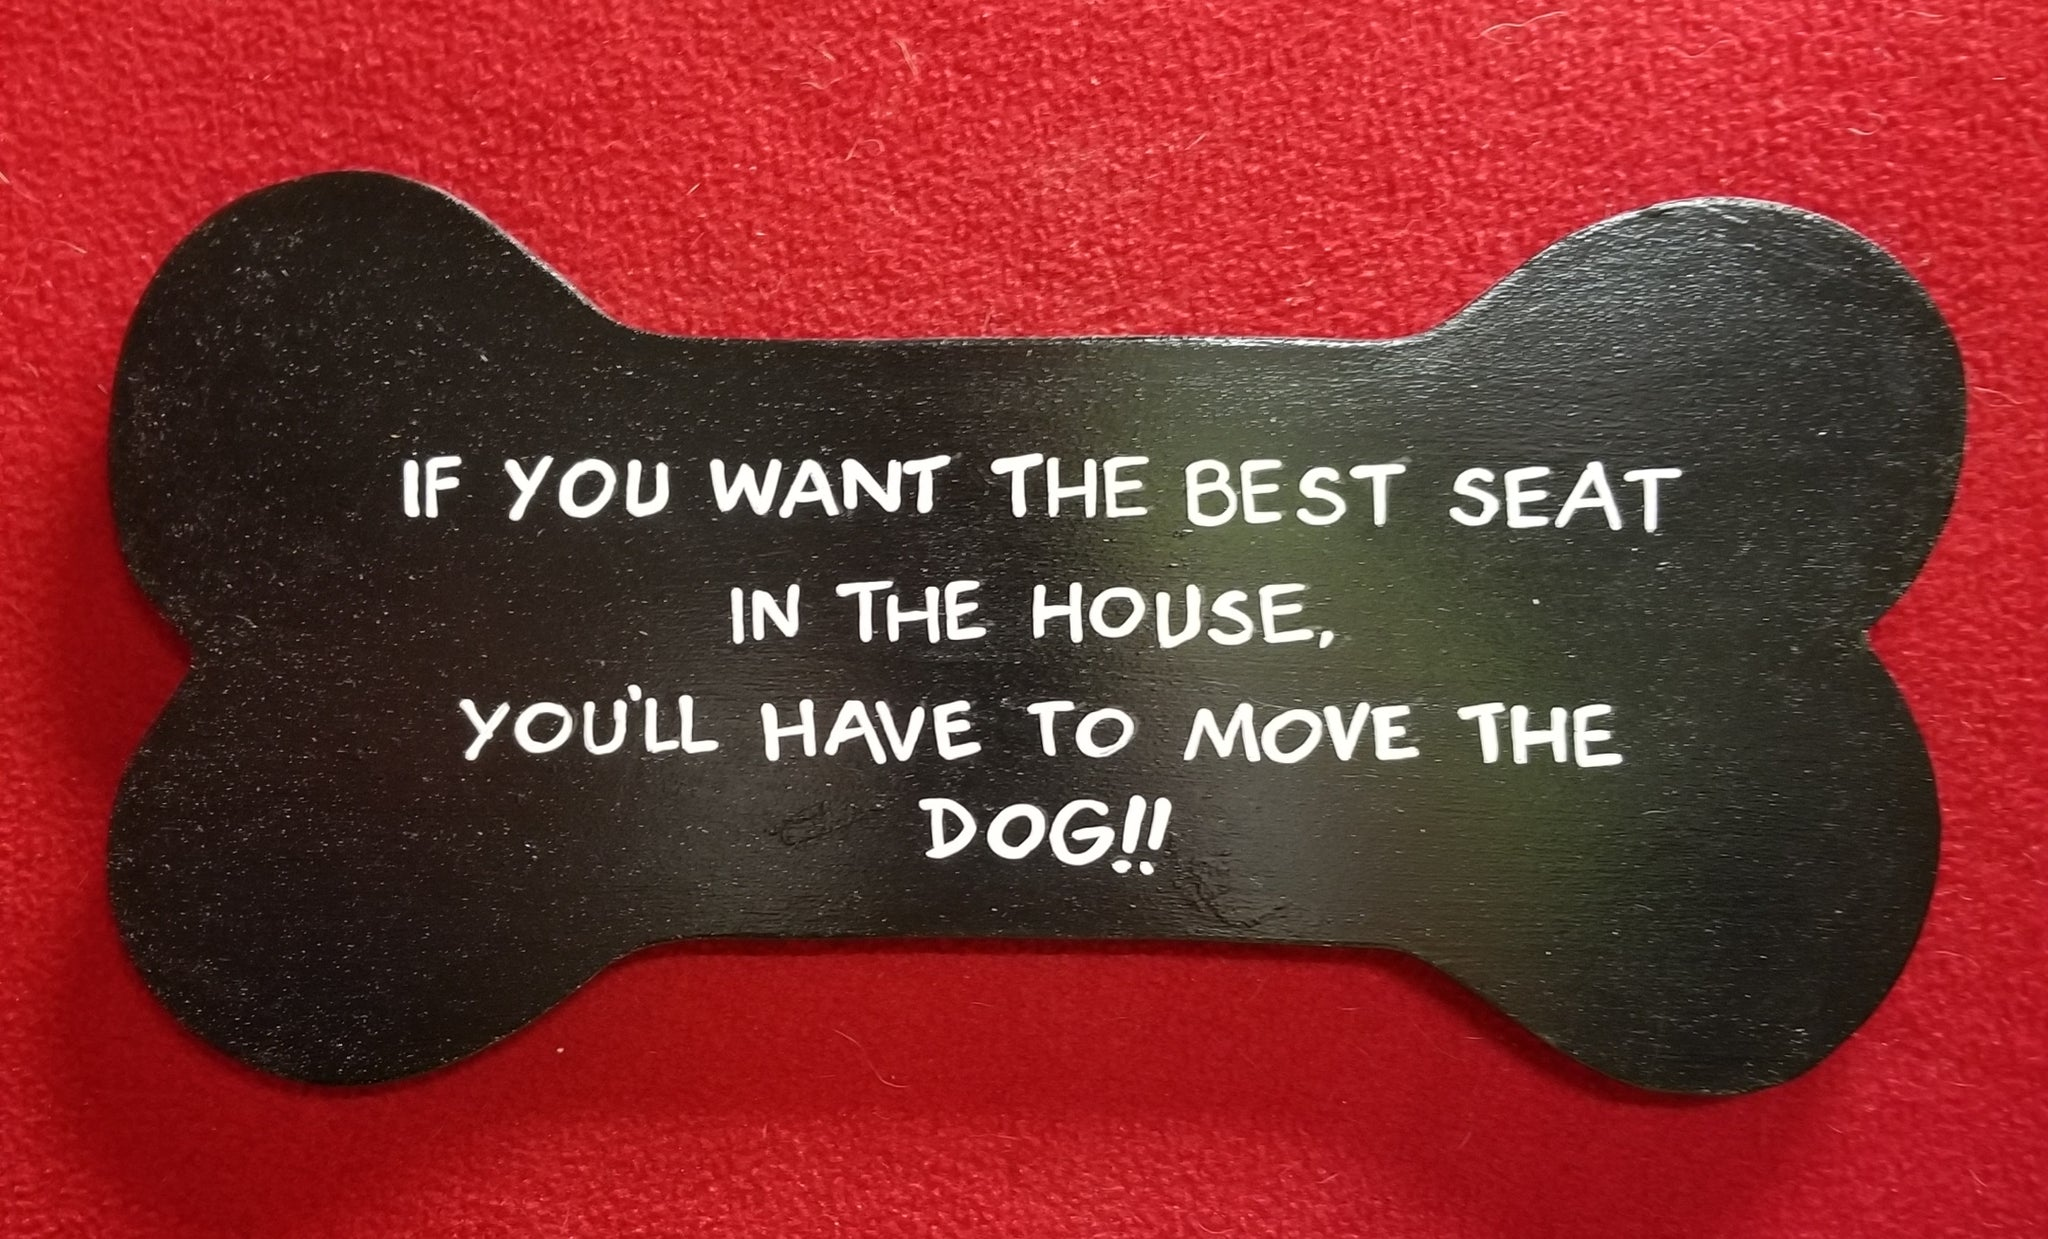 If you want the best seat in the house, you'll have to move the dog!